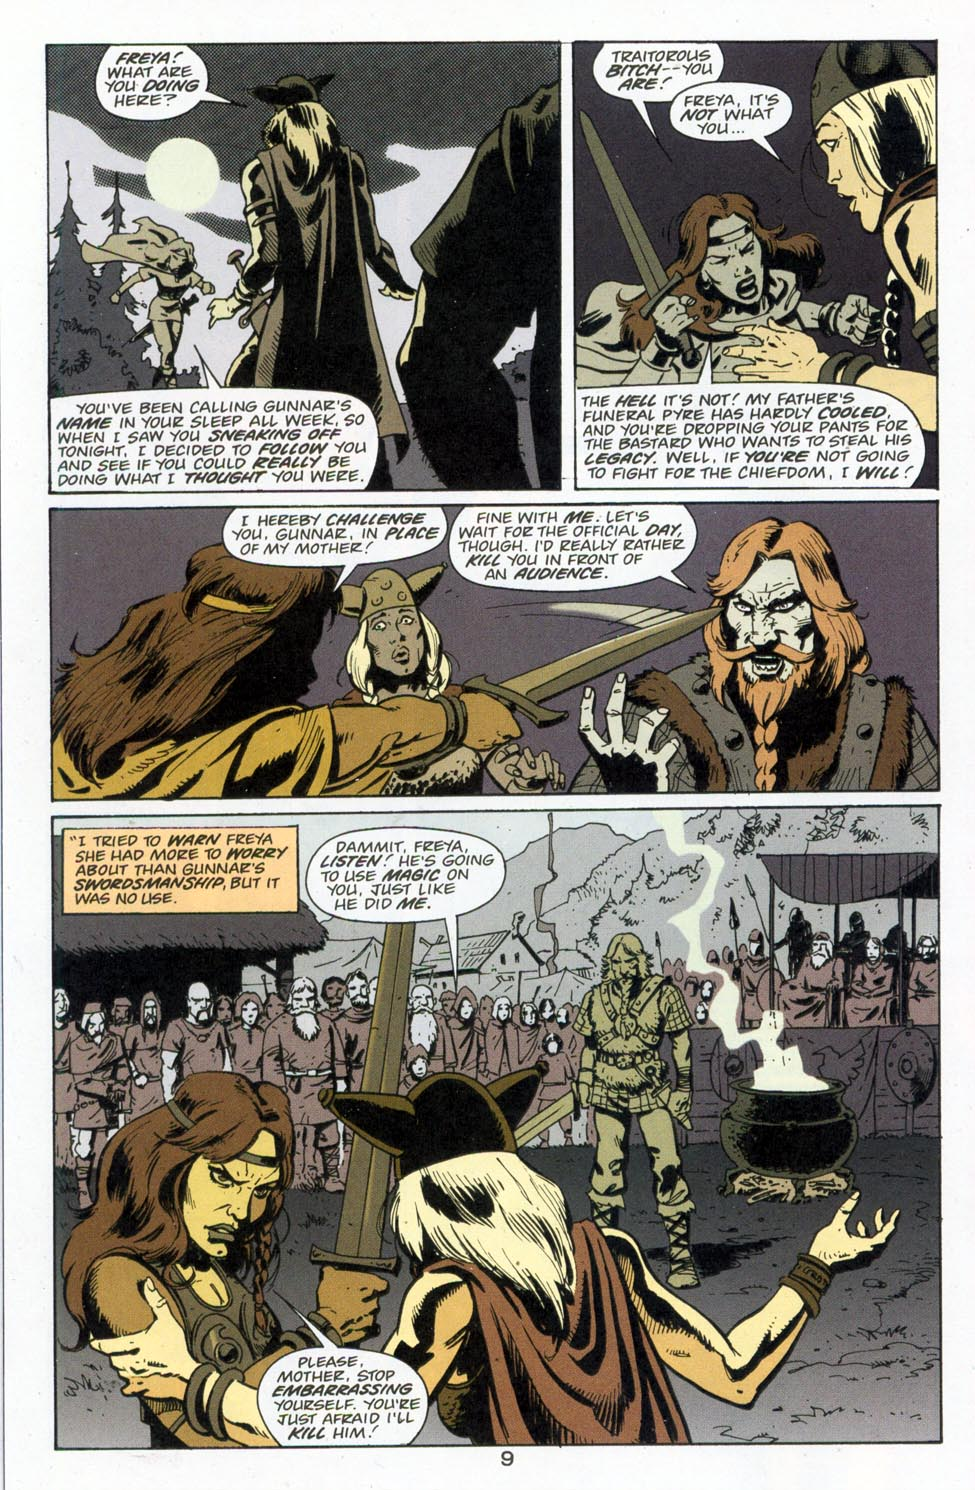 Battleaxes Issue 1 | Viewcomic reading comics online for